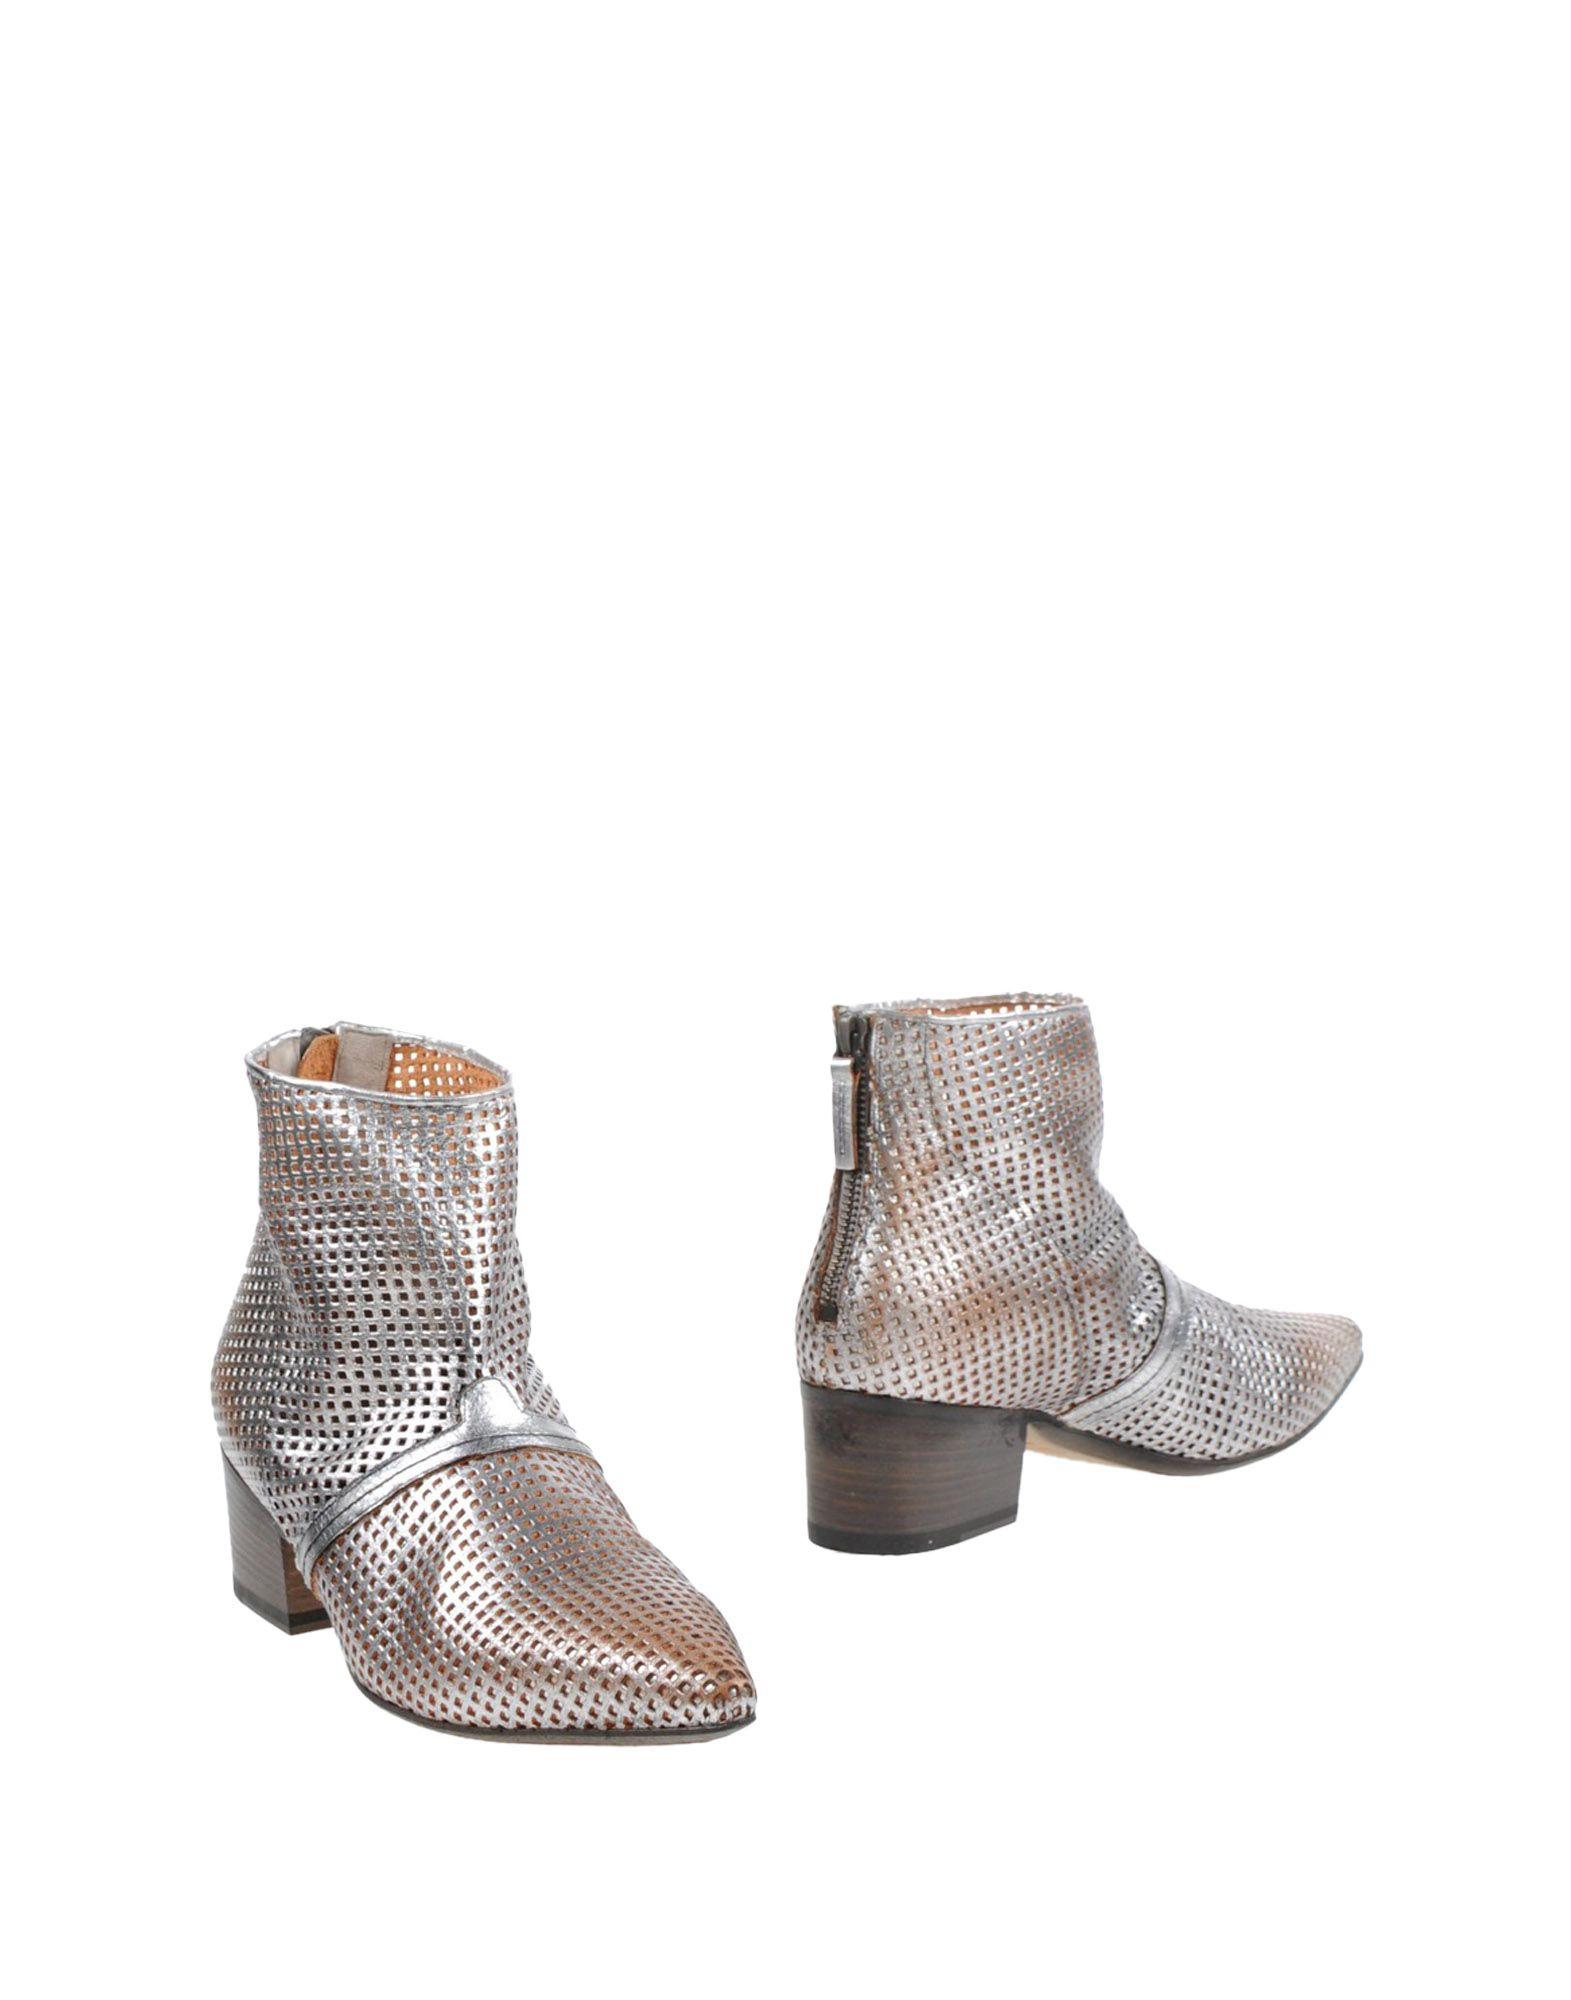 SETTIMA Ankle Boot in Silver